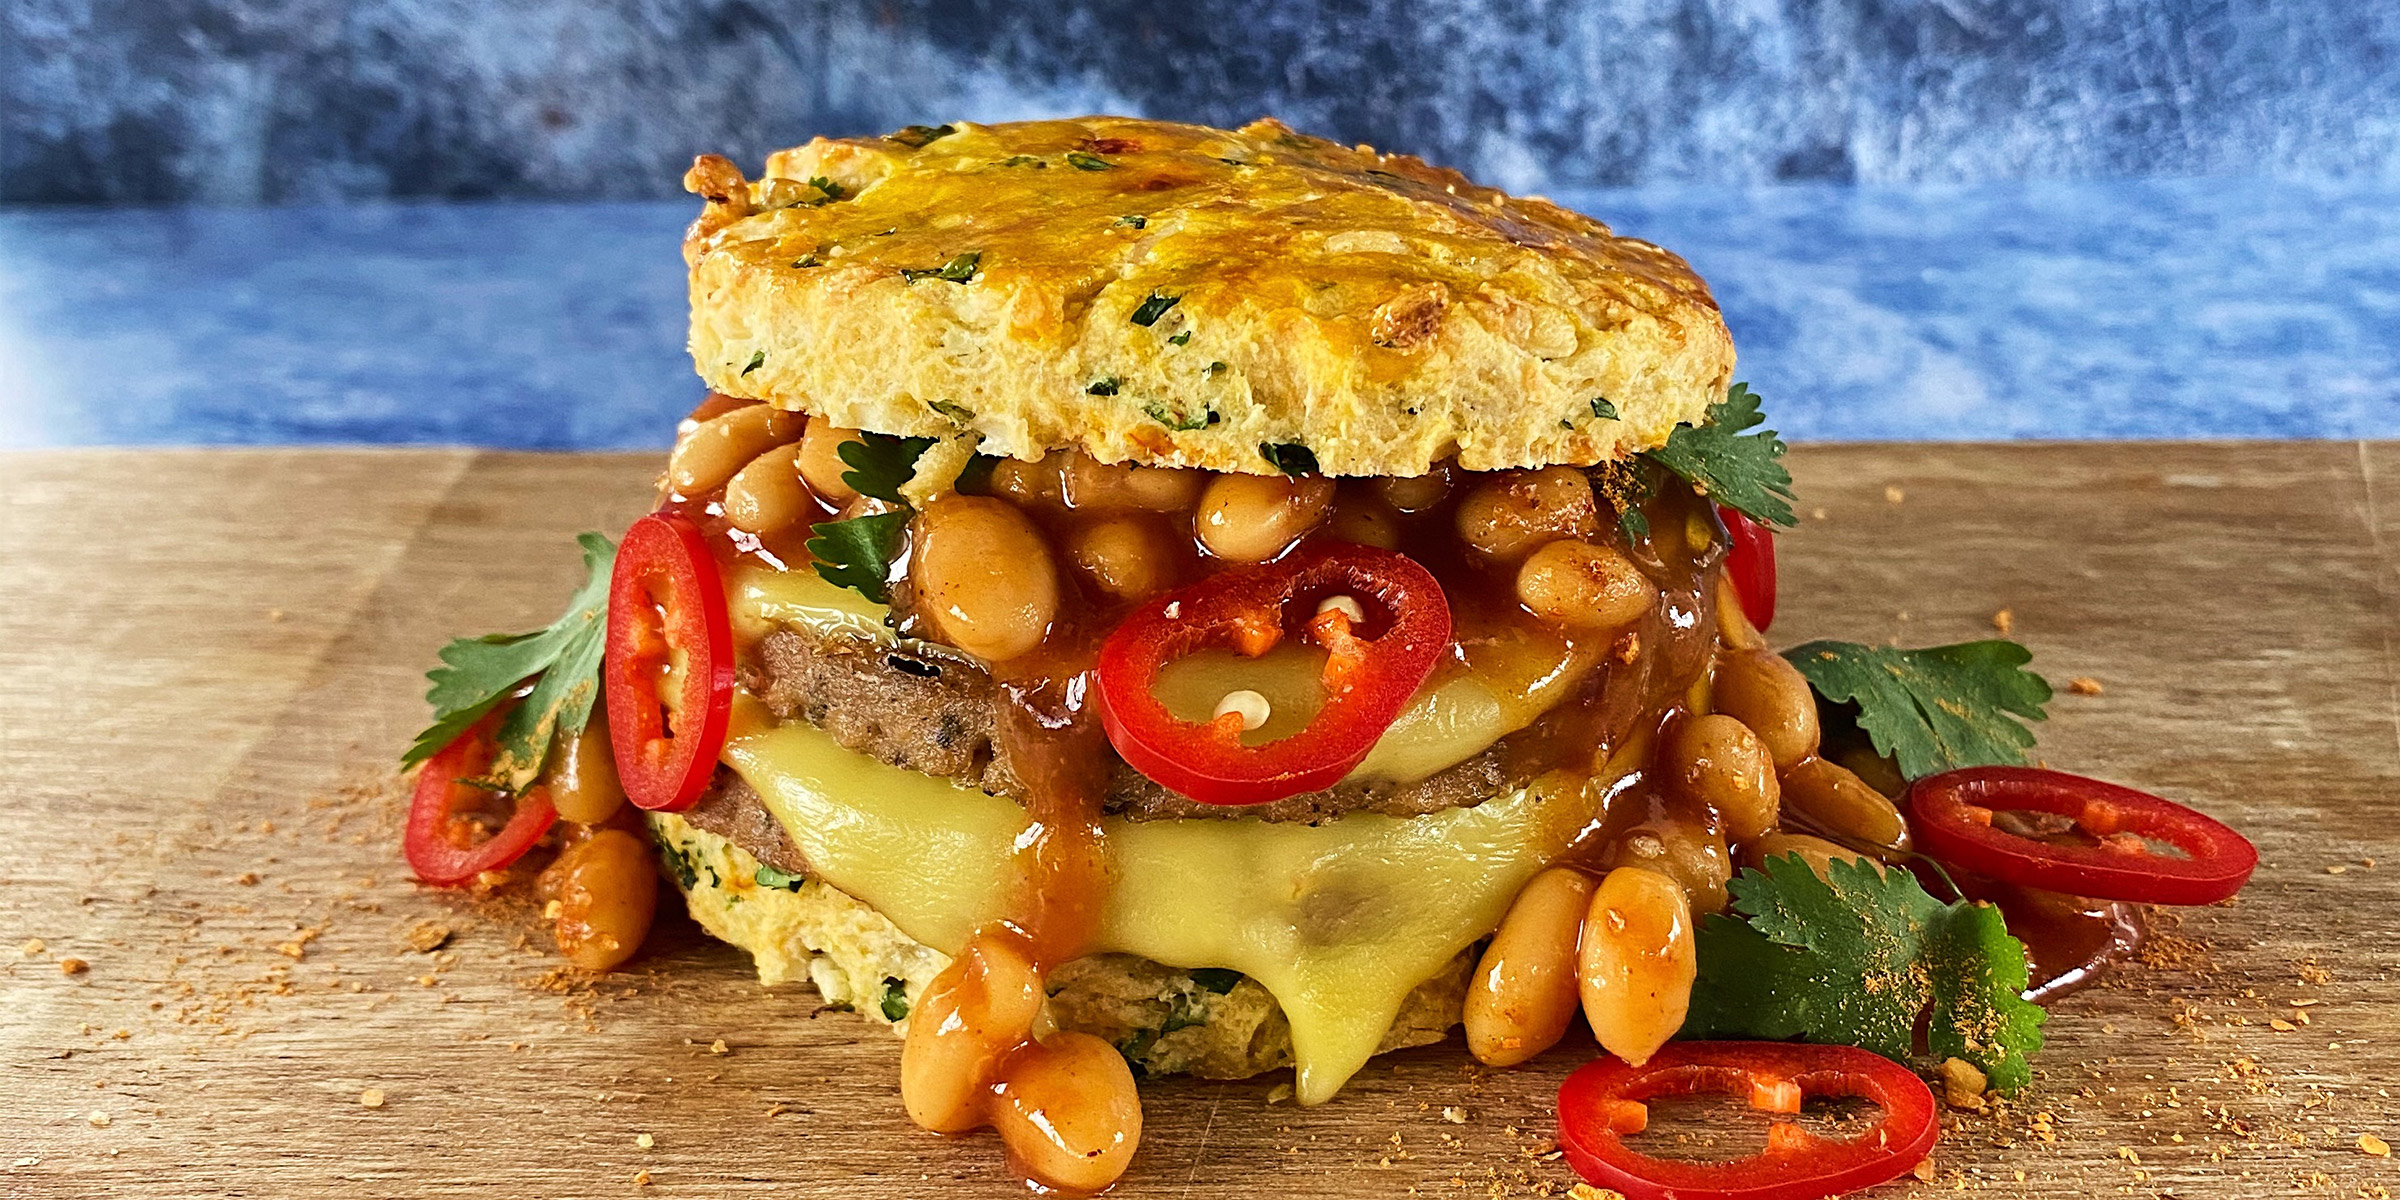 Meatless Farm Plant-based Sausage Pattie, Cheddar & Jalapeno scones, smokey beans, spinach